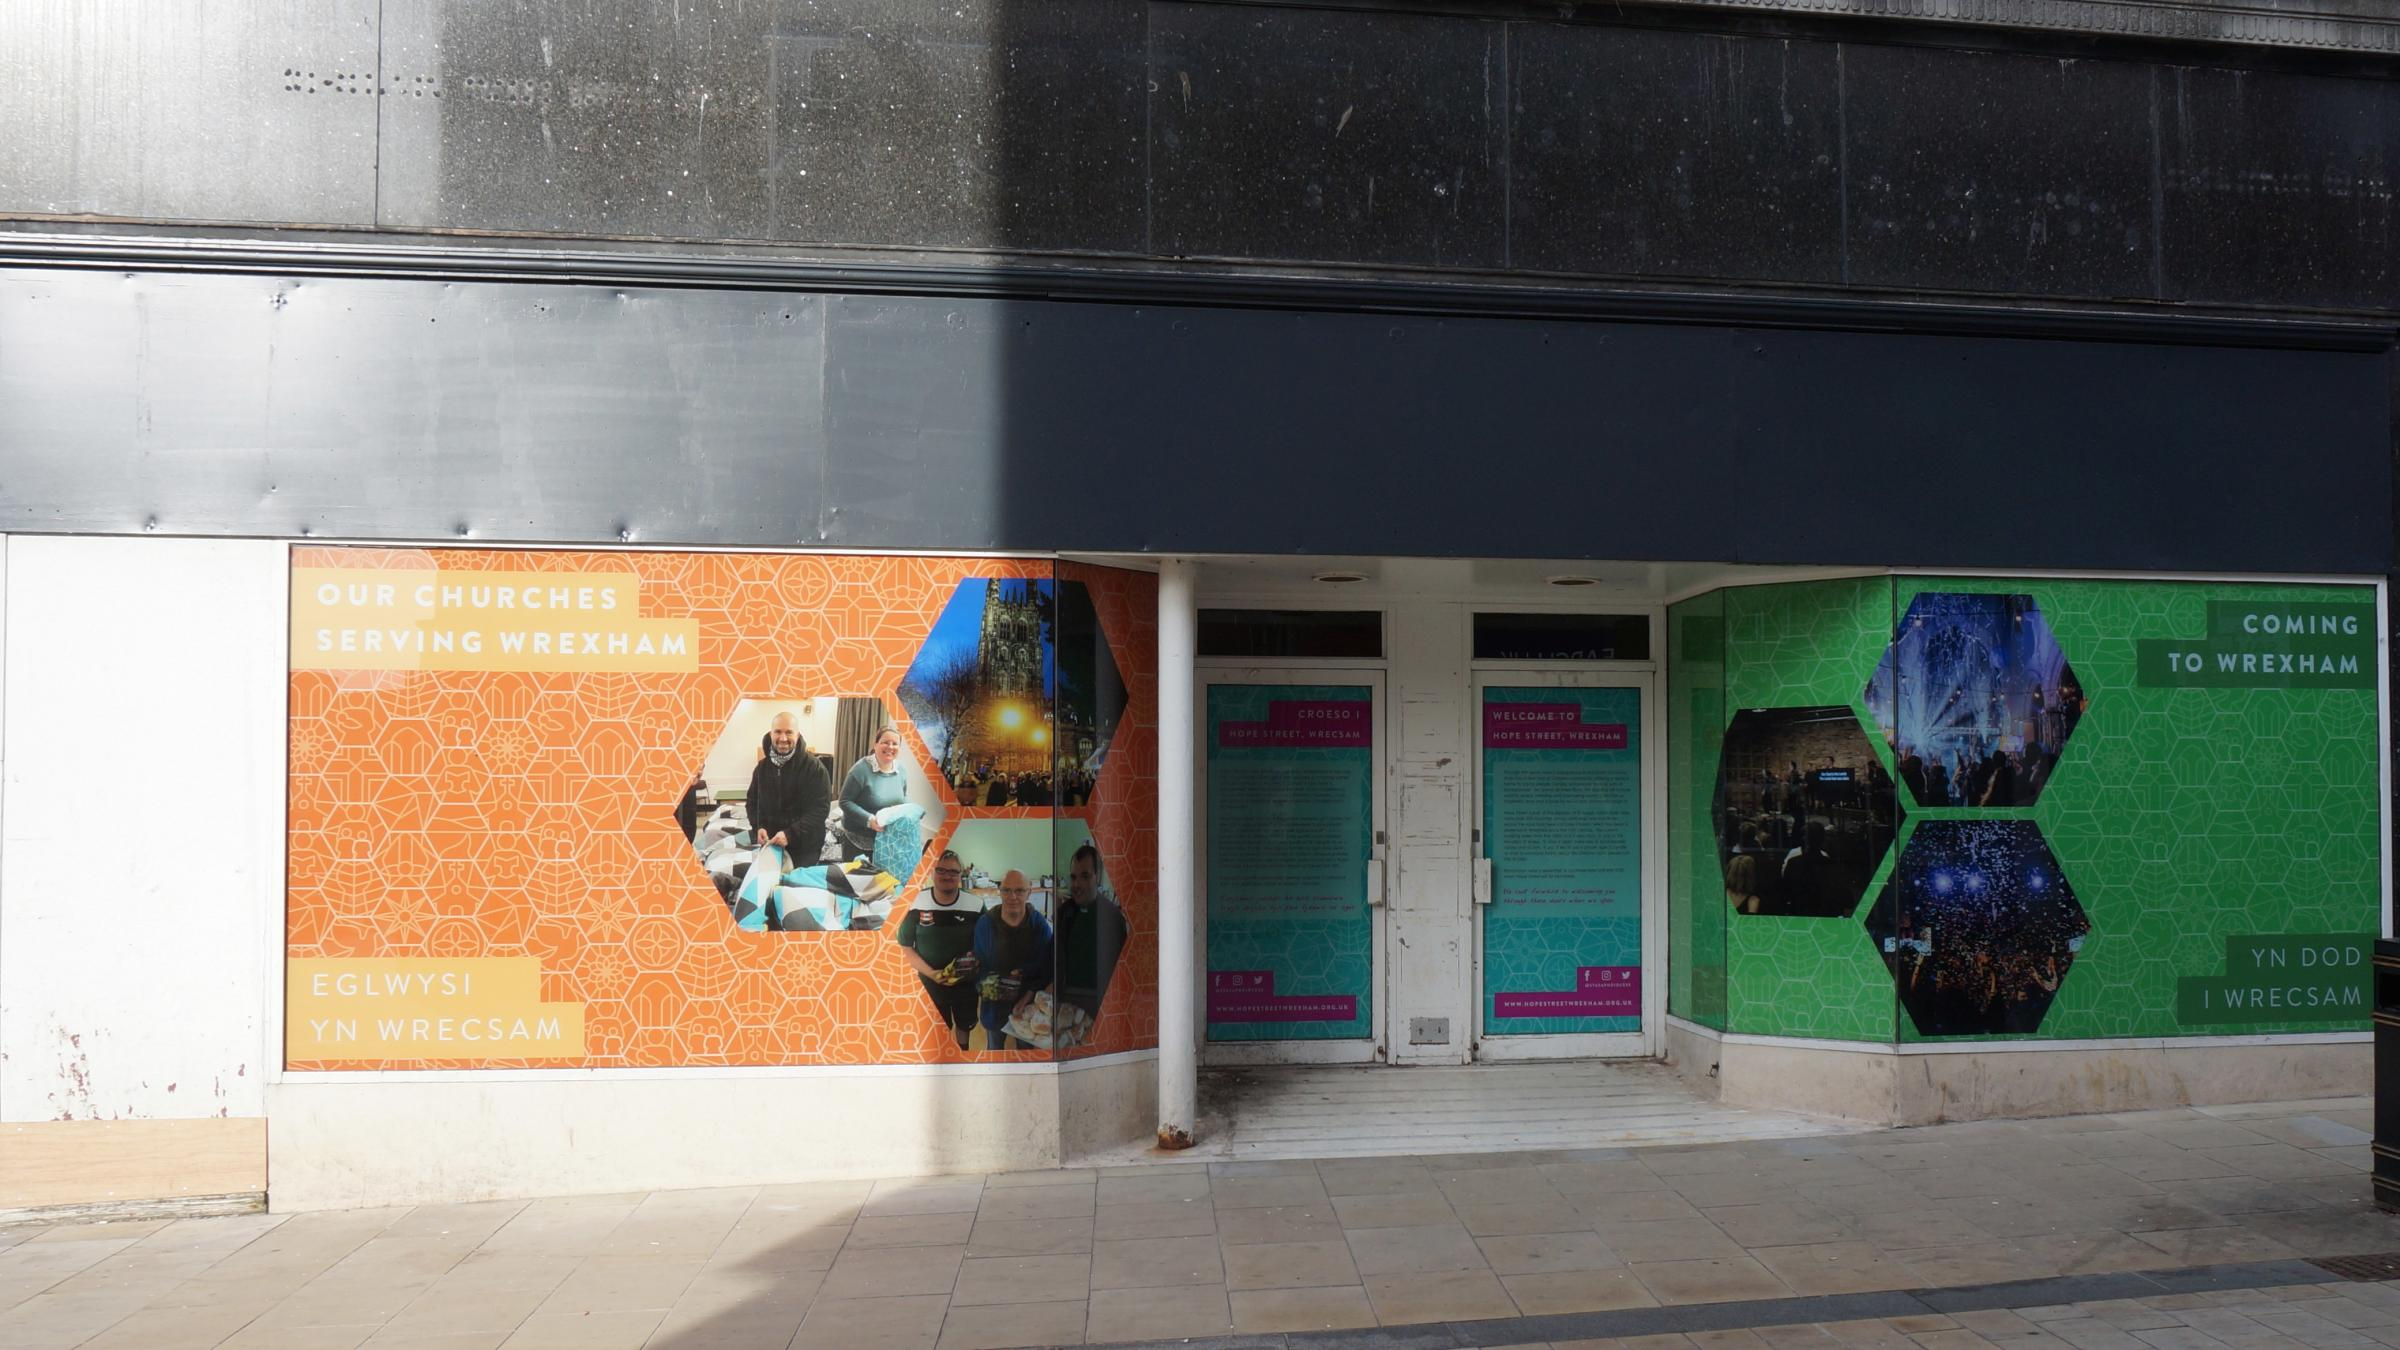 New window displays for former Burton store as refurbishment gets underway